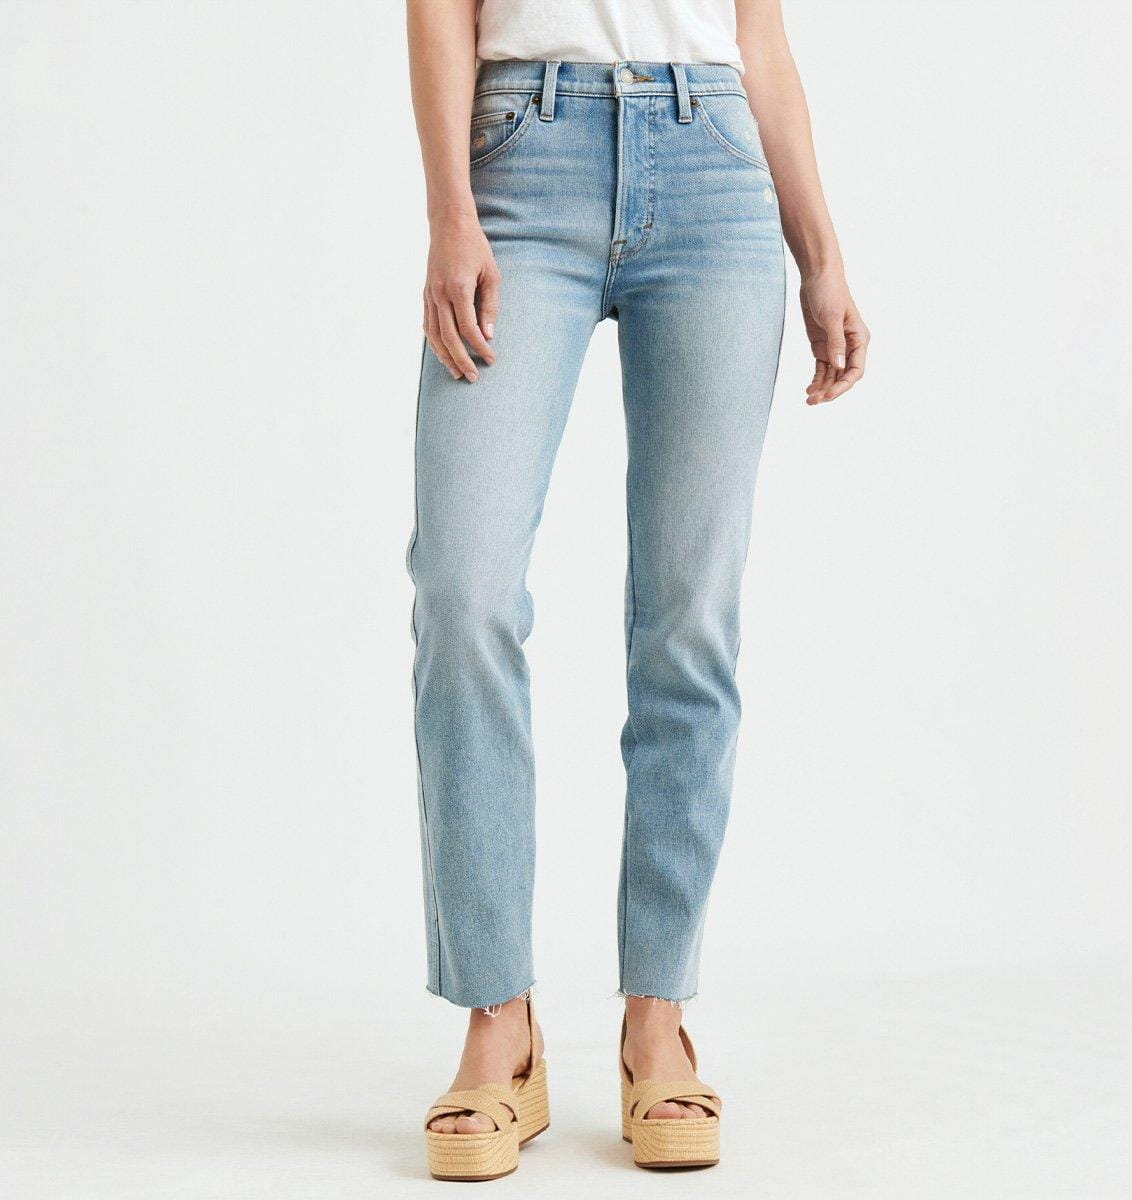 Lucky Brand Jeans: 40% Off Everything or 50% Off $200+